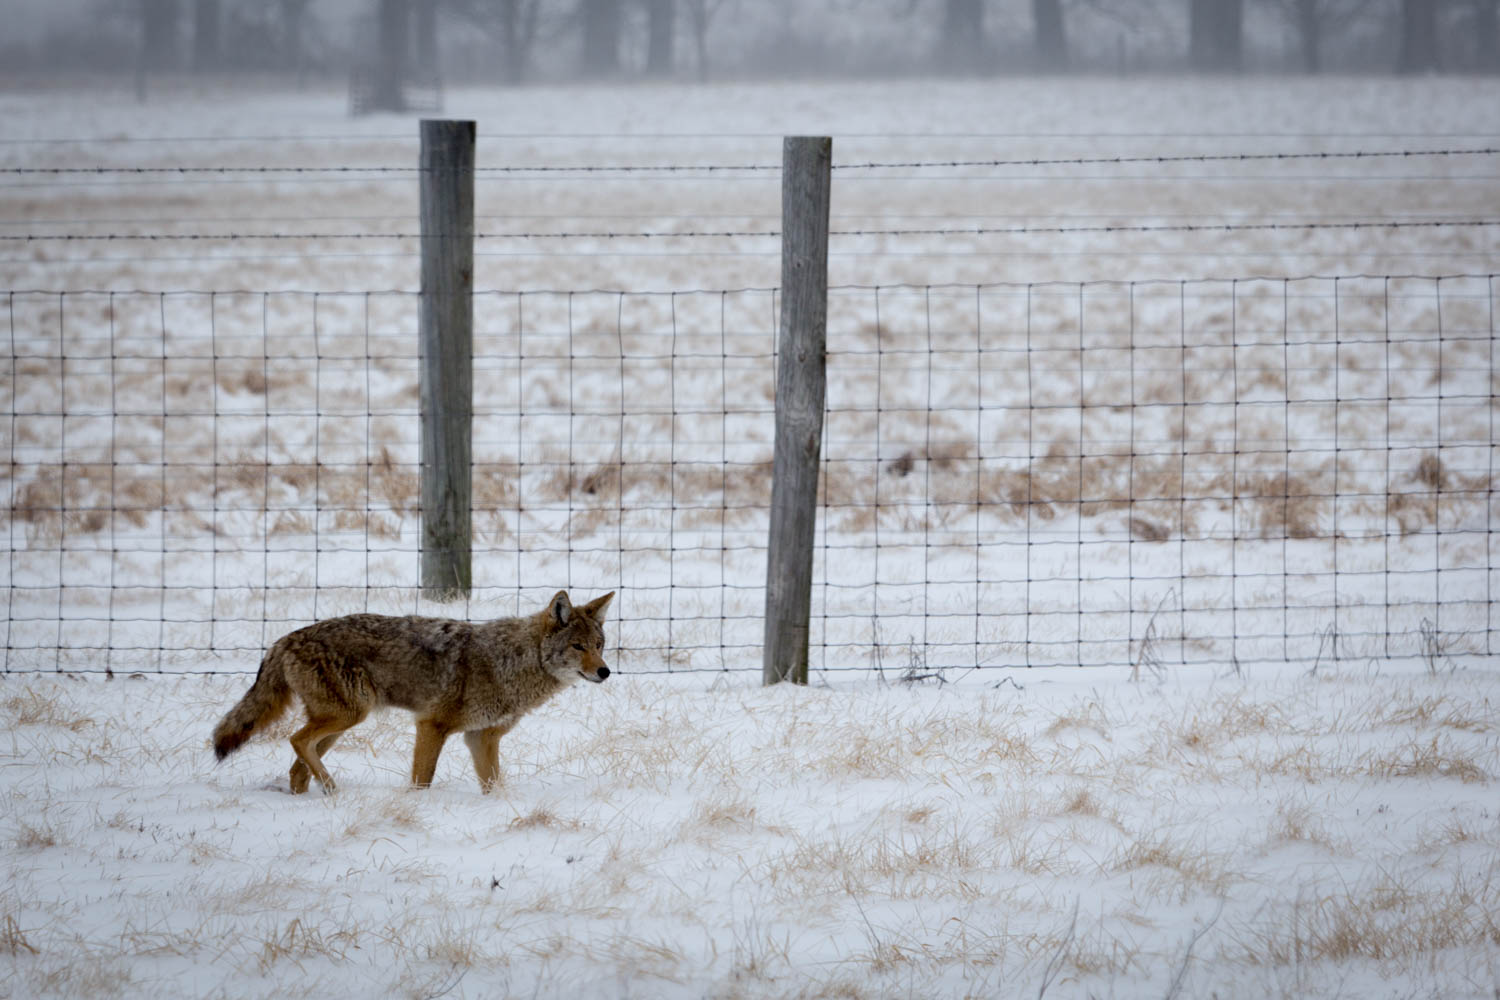 A coyote stops by the bison pasture on a snowy day. Photo: Jesus Orduna, Brown University